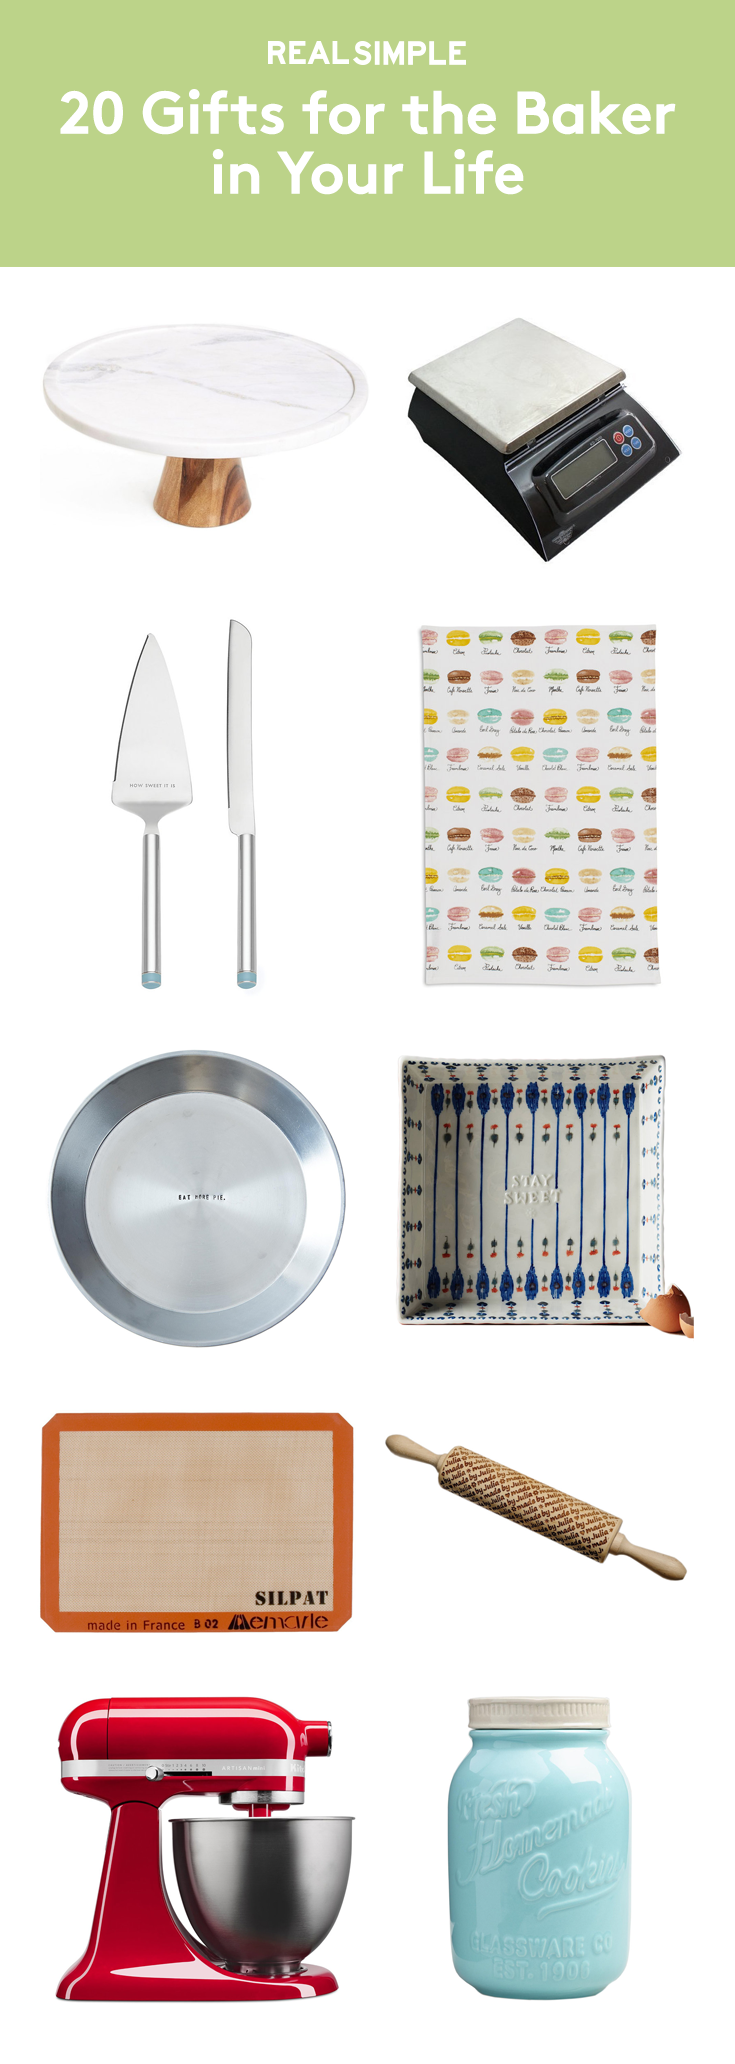 20 Gifts for the Baker in Your Life   For people who truly love to bake, a new tool for their kitchen arsenal is a great gift idea. No matter what you settle on, you'll want to check out these ideas—there's something for everyone, from the novice baker to the lifelong baking enthusiast. One last piece of advice: we suggest you ask to sample whatever delicious treats are cooked up using your gift. How's that for a (tasty) win-win?